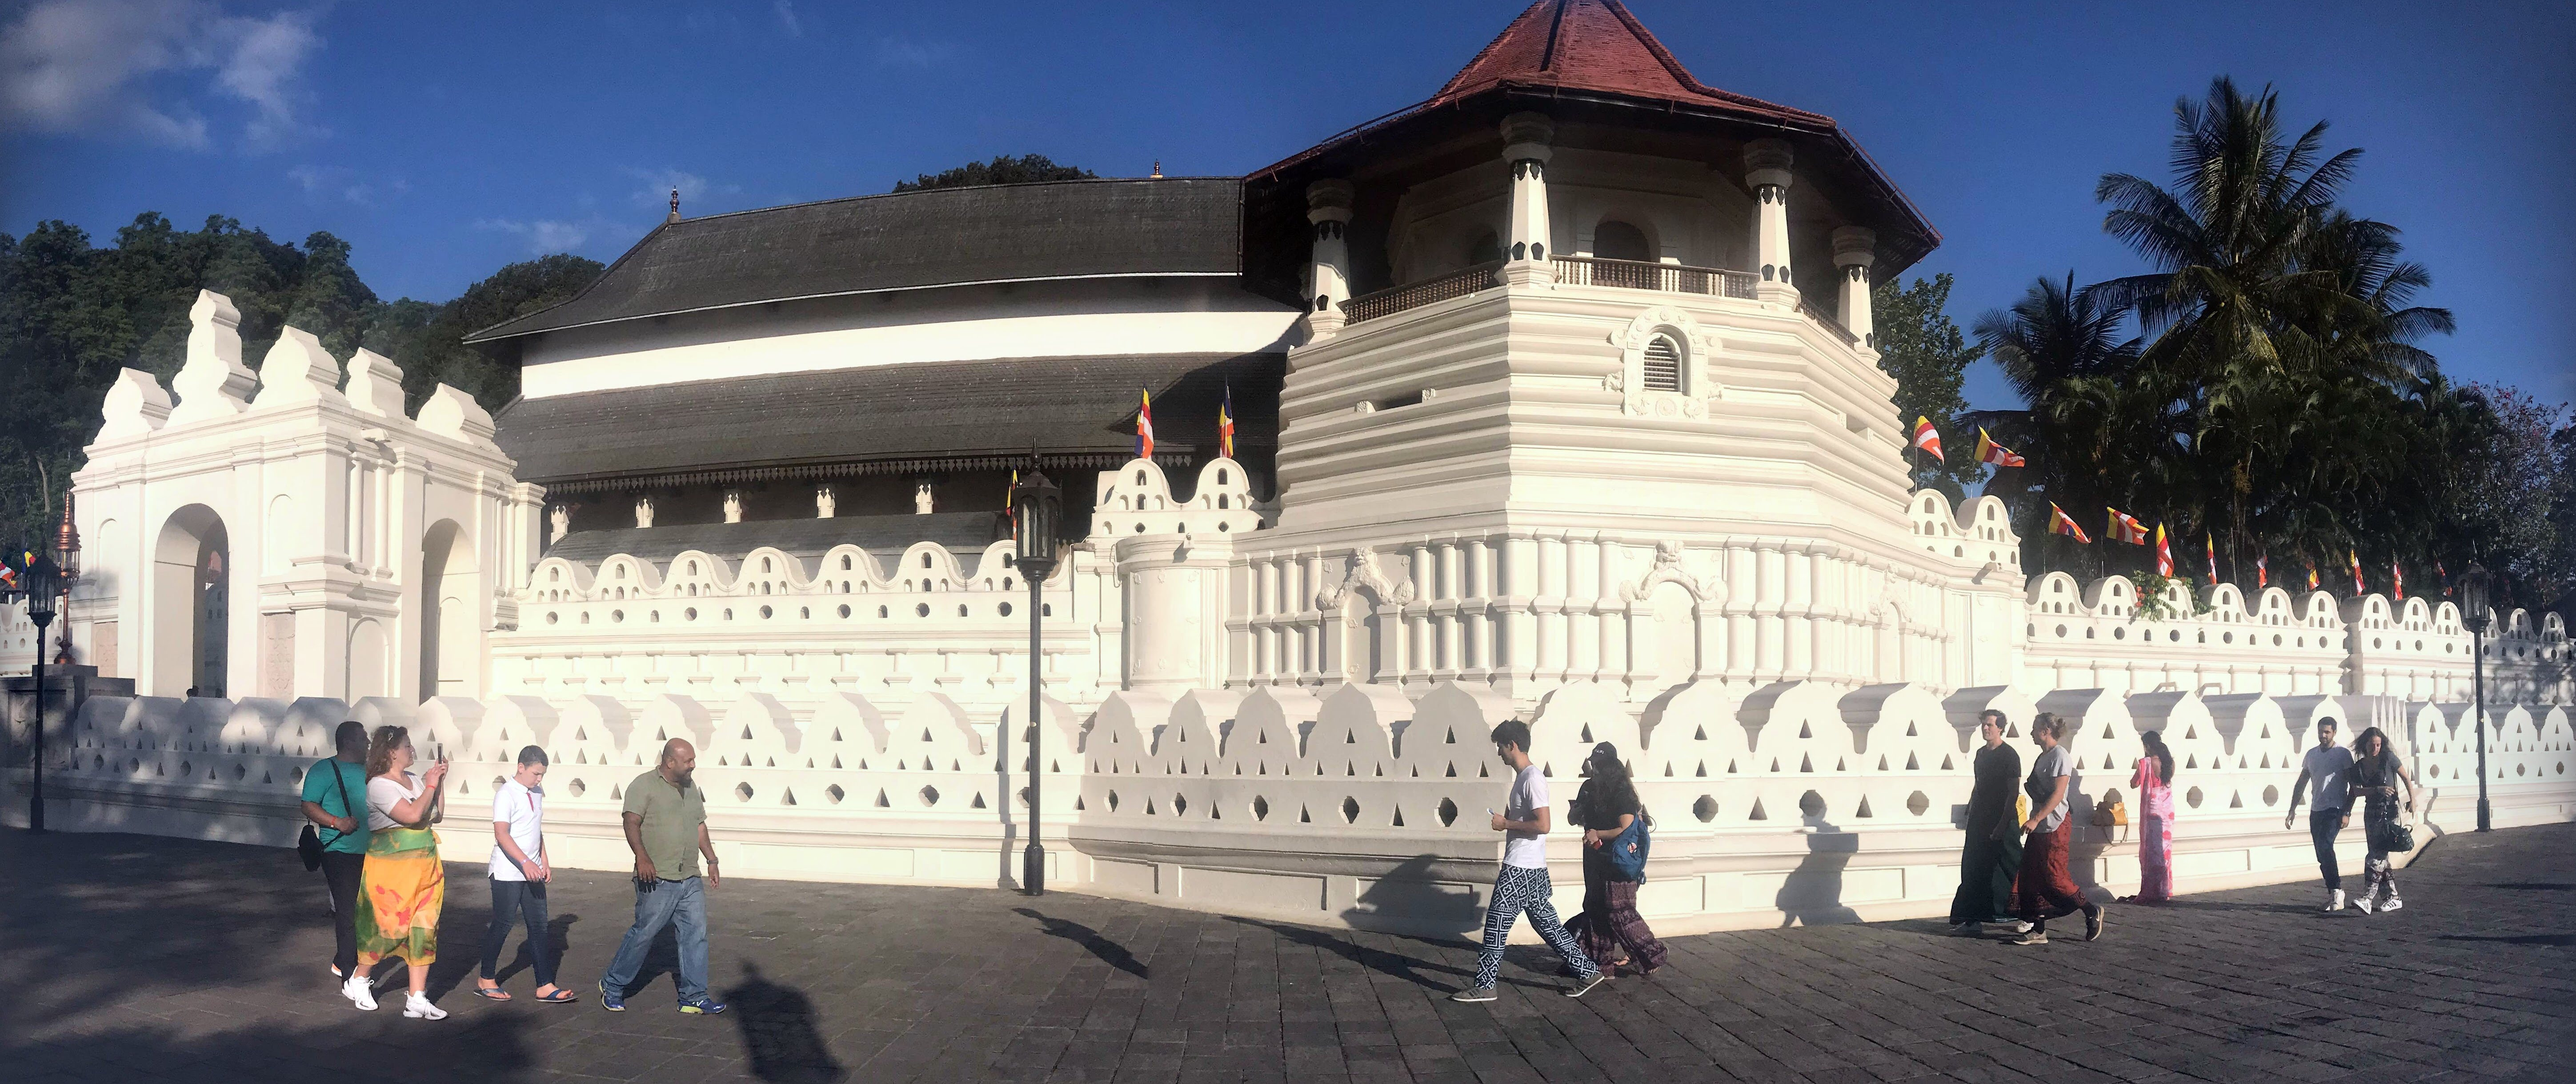 Temple of the Sacred Tooth Relic, Kandy